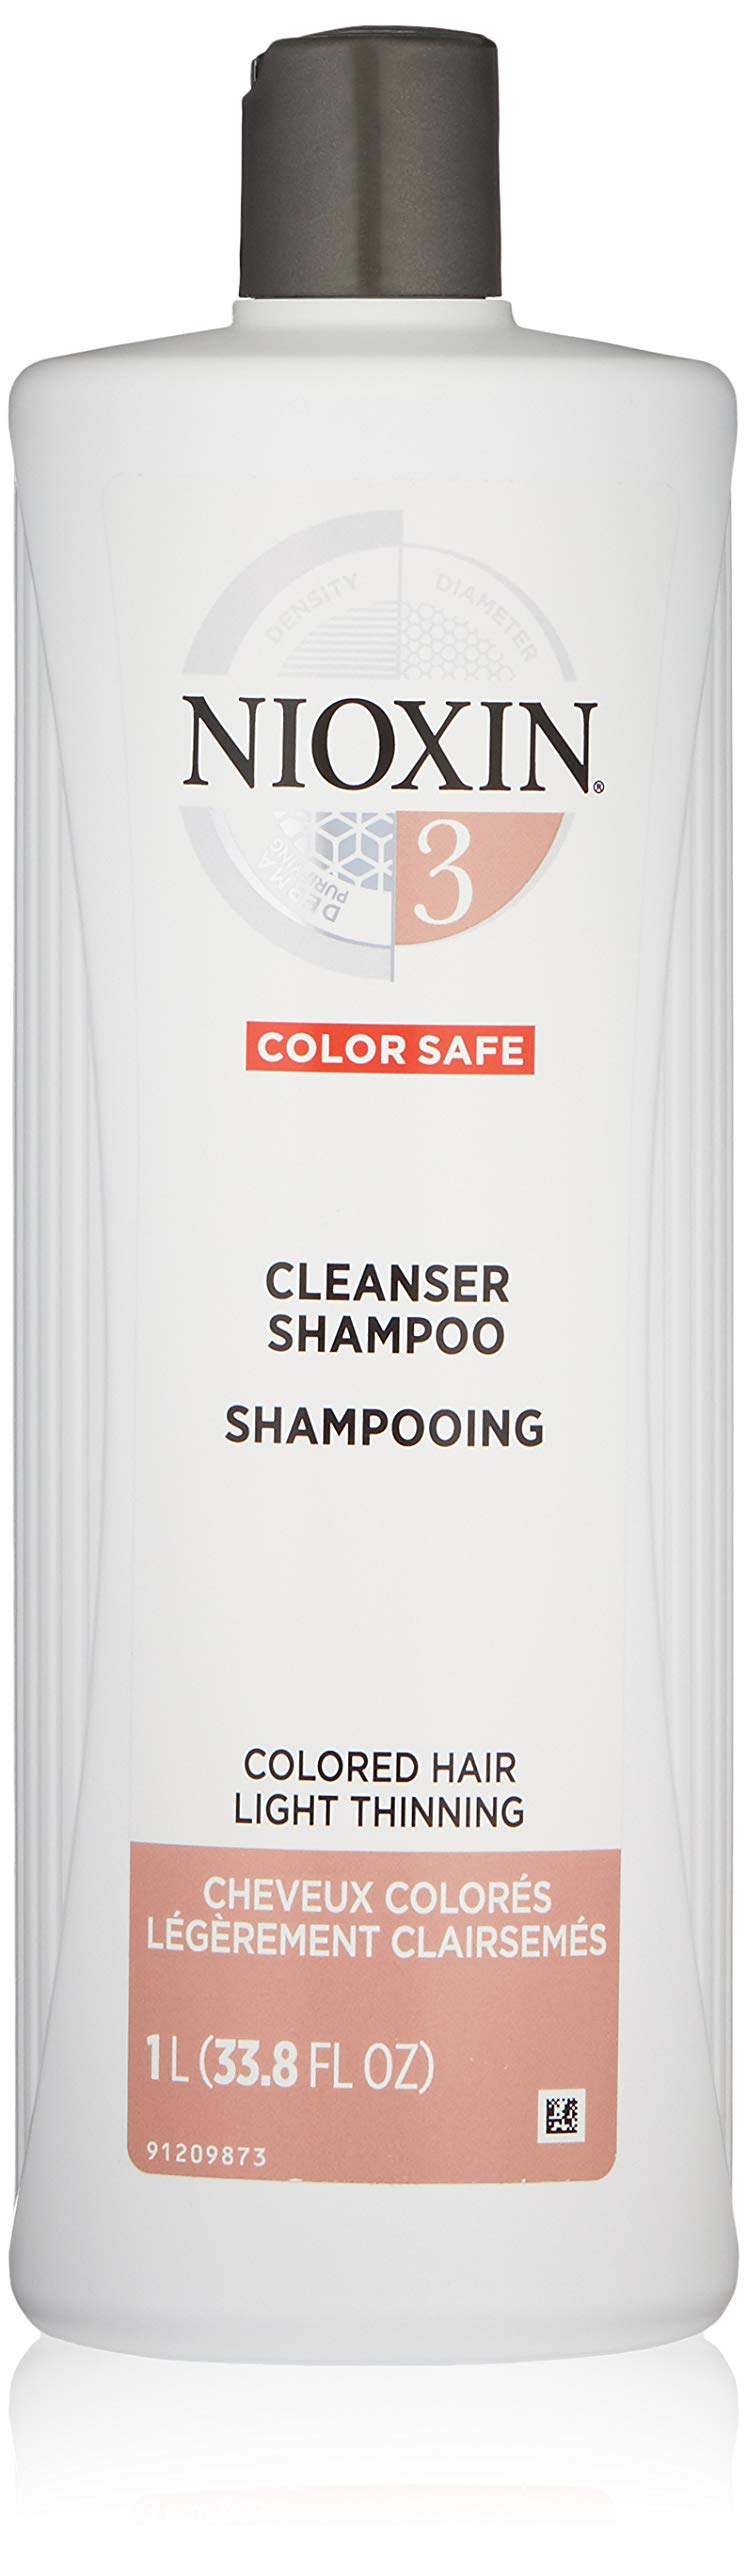 Nioxin Cleanser Shampoo System 3 for Color Treated Hair with Light Thinning, 33.8 Ounce by Nioxin